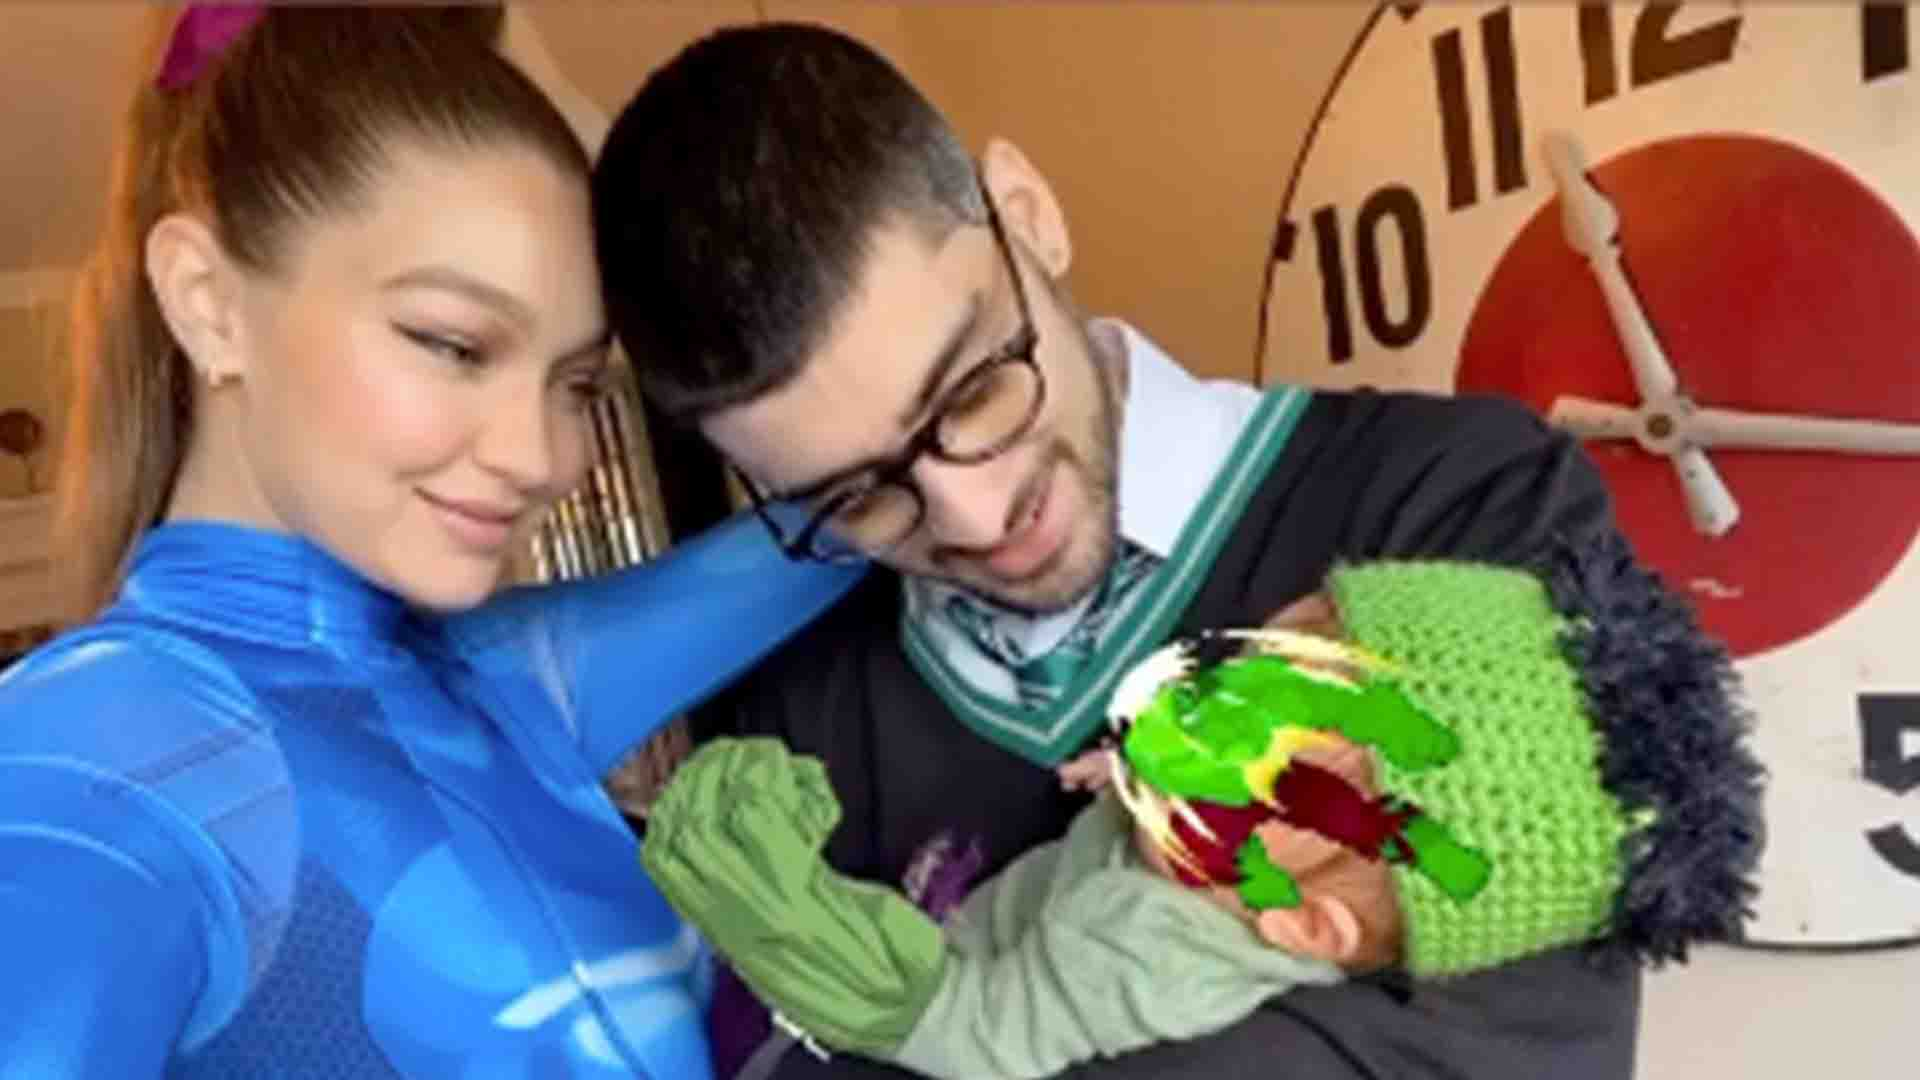 Gigi Hadid & Zayn Malik Share First Family Photo with Their Baby Daughter